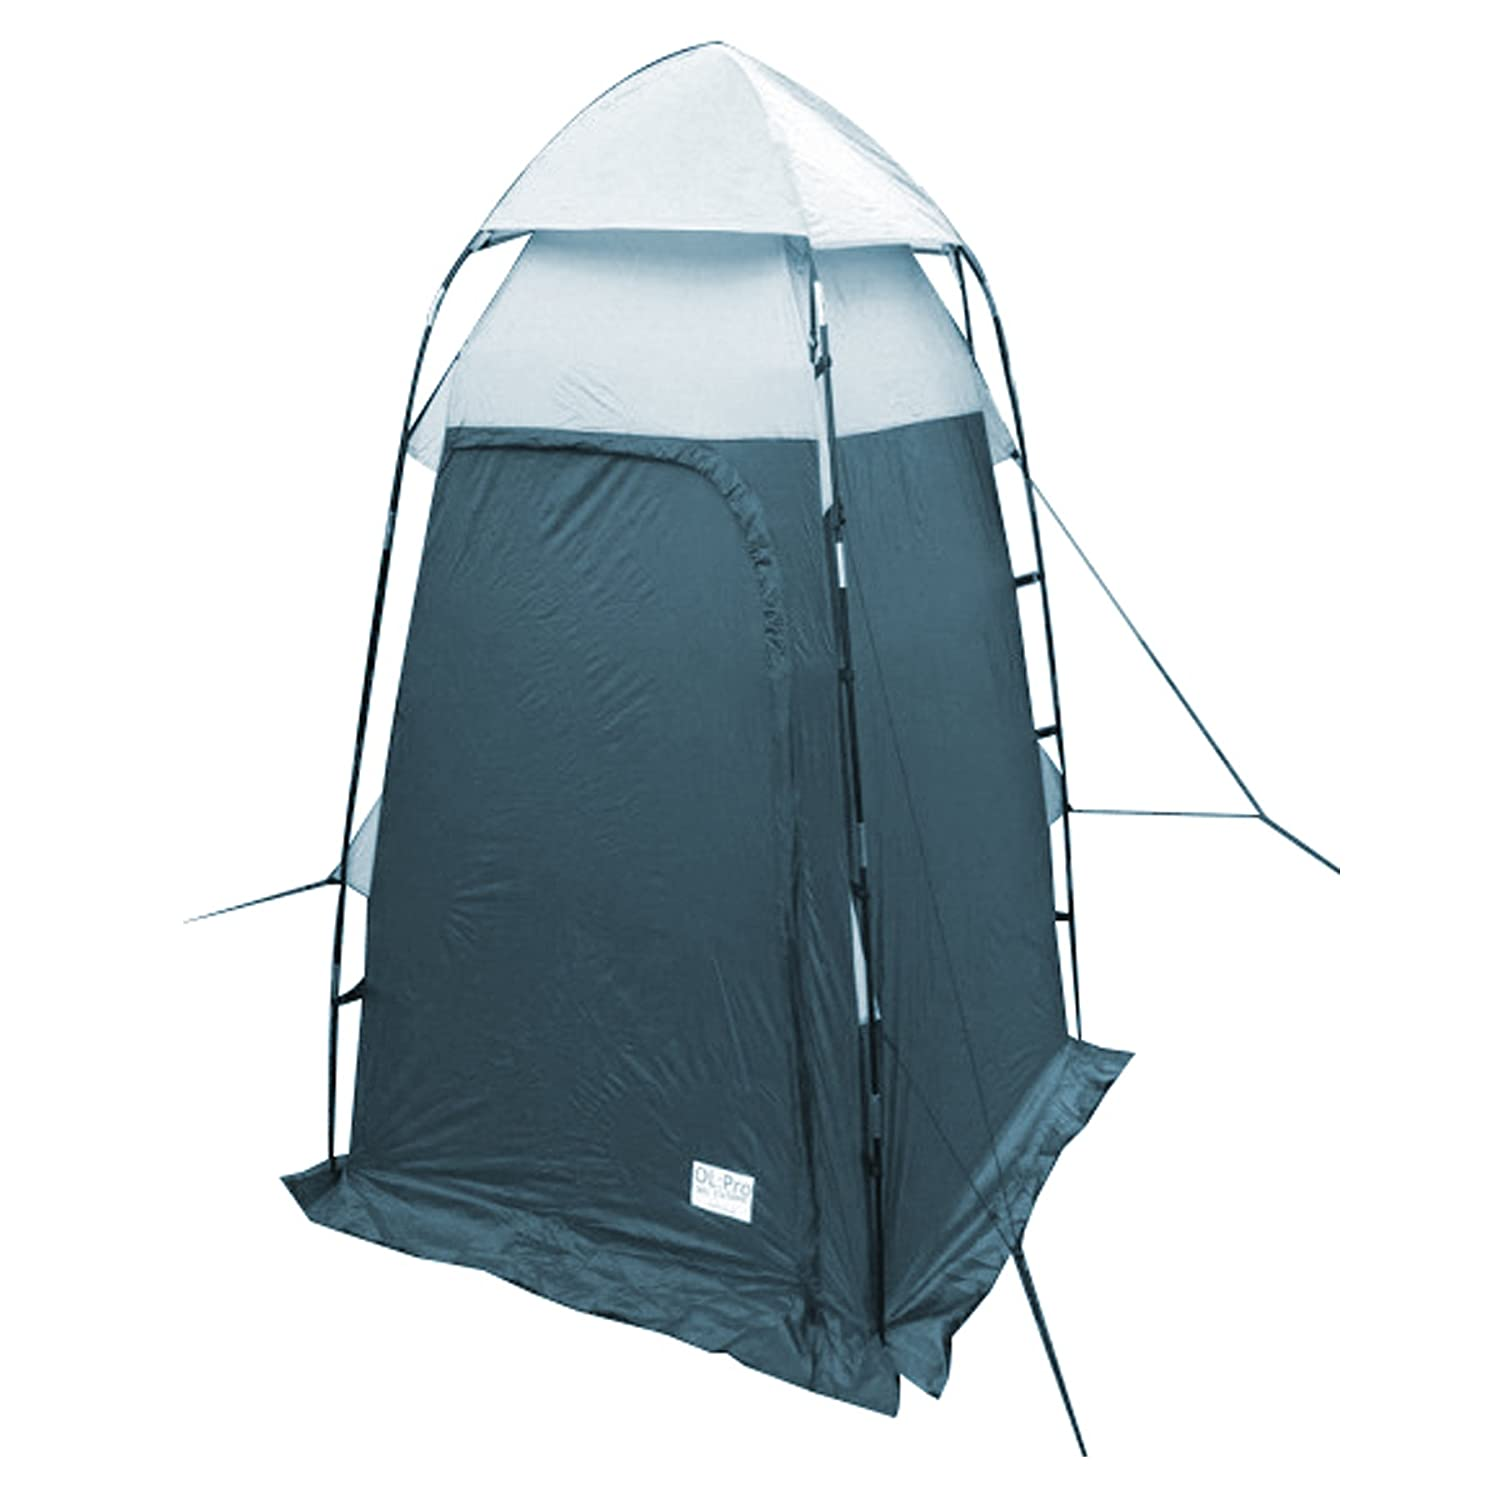 Vango Tango 300 Tent 2017: Amazon.co.uk